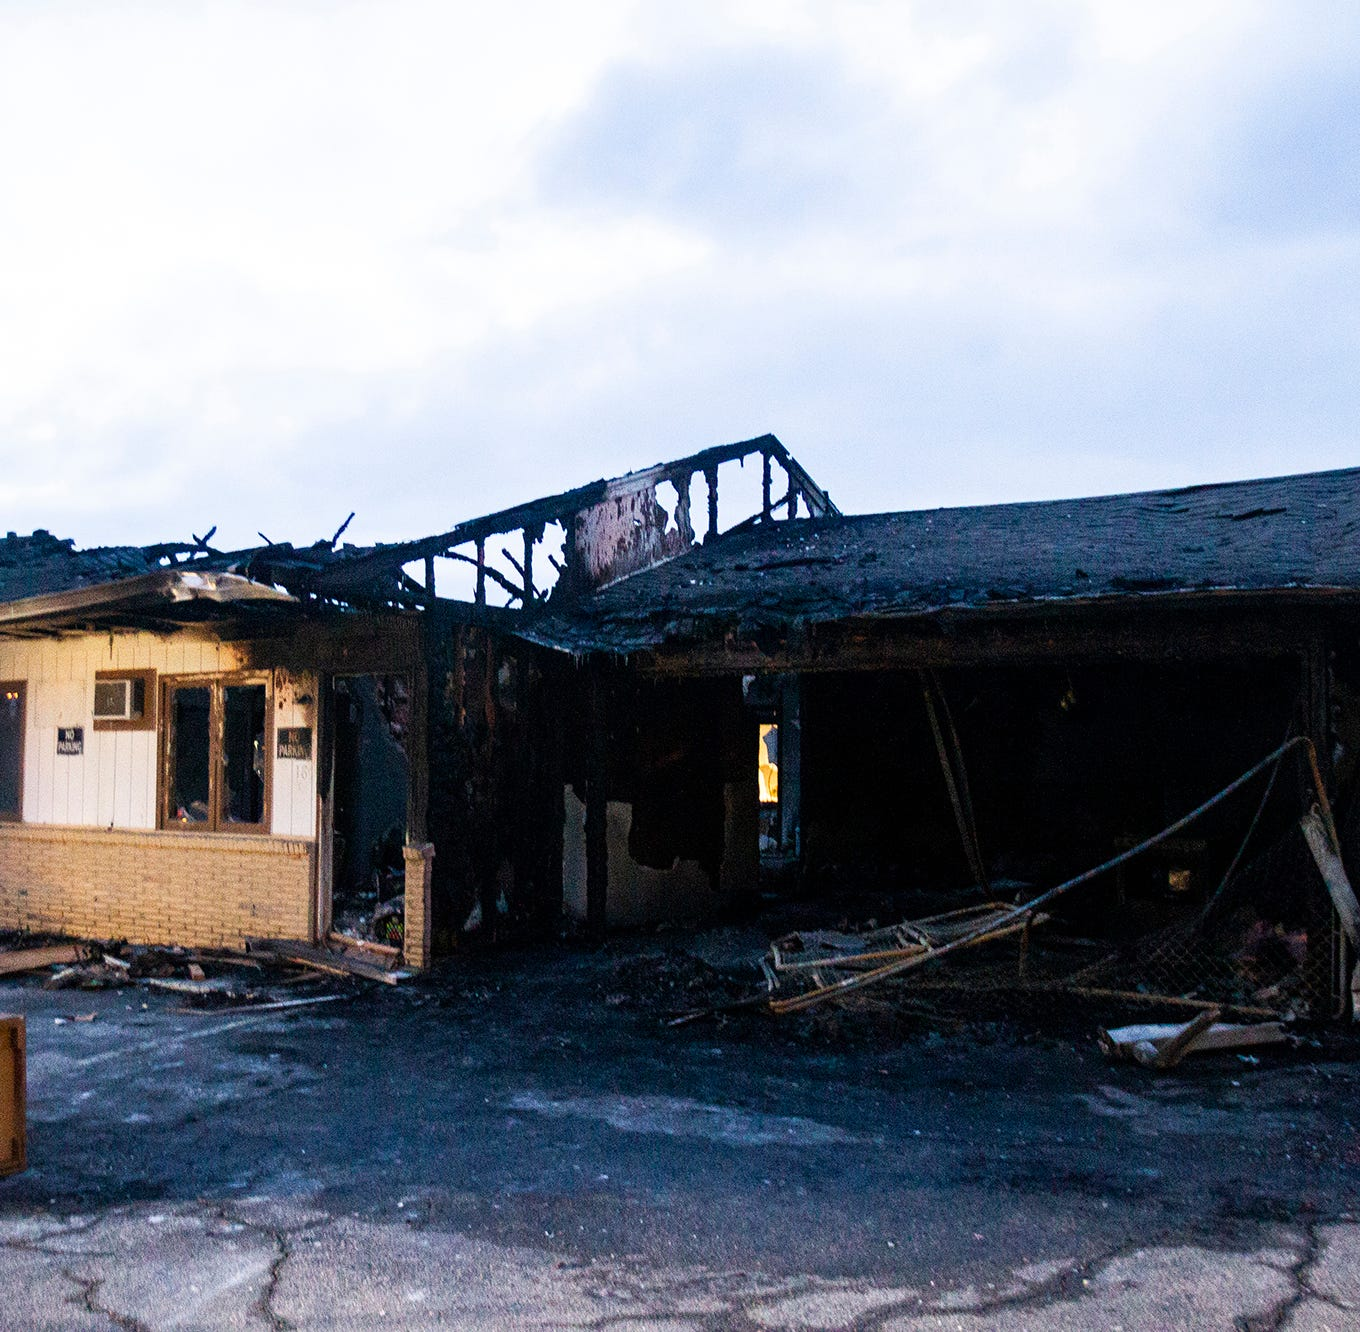 Coralville Fire investigating Monday's former Capri Lodge fire